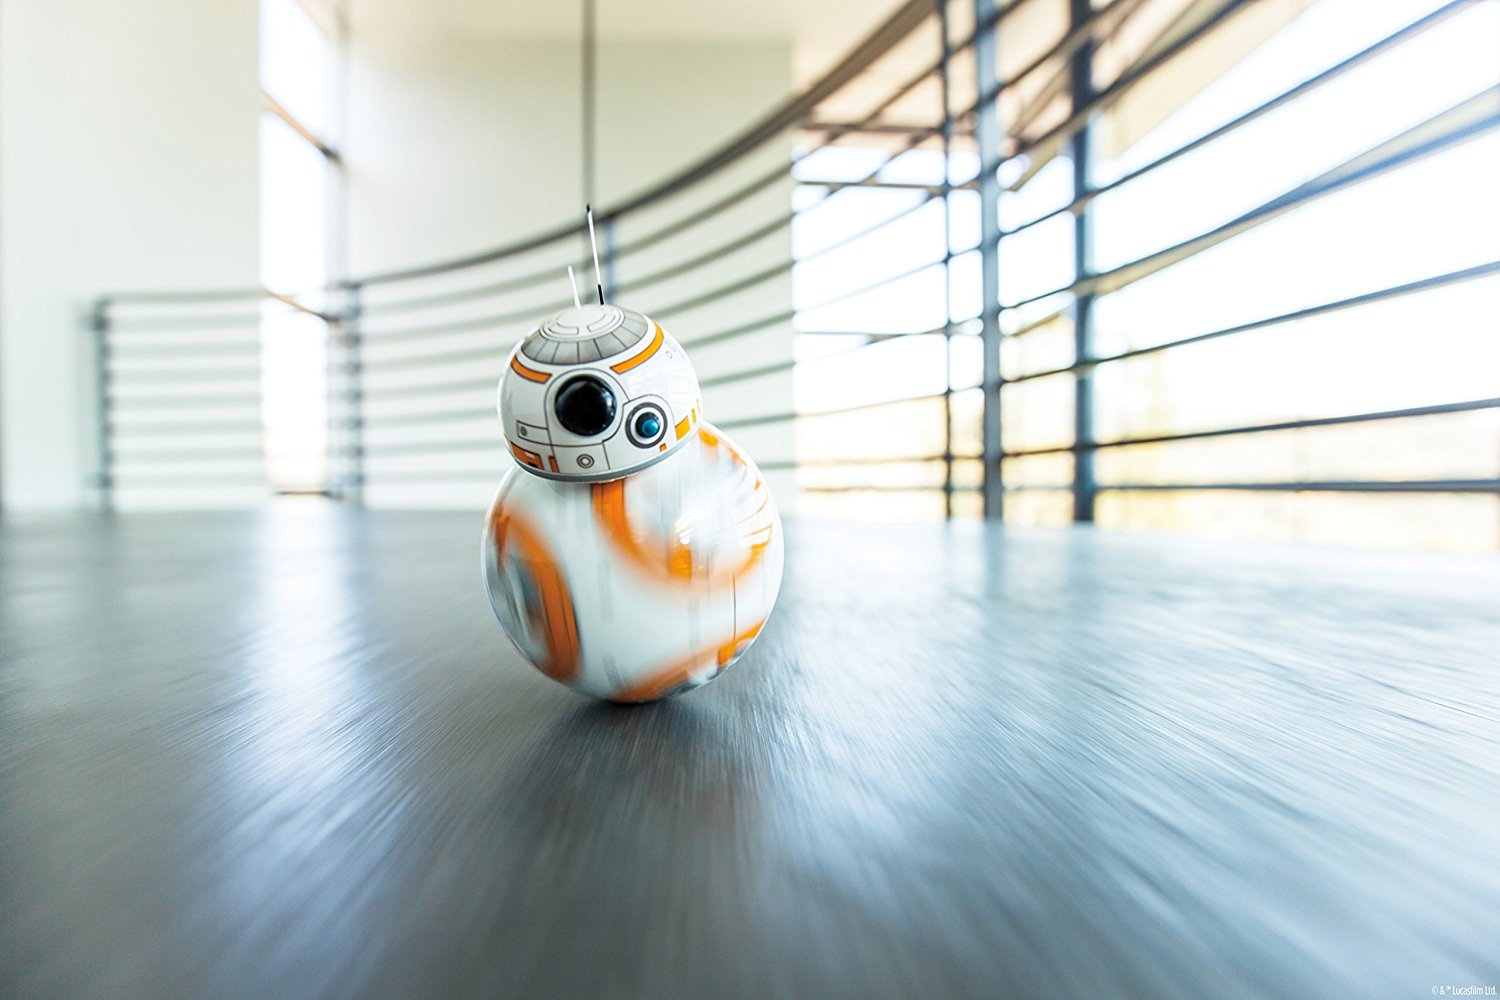 best-remote-control-sphero-star-wars-bb-8-app-controlled-robot-2017